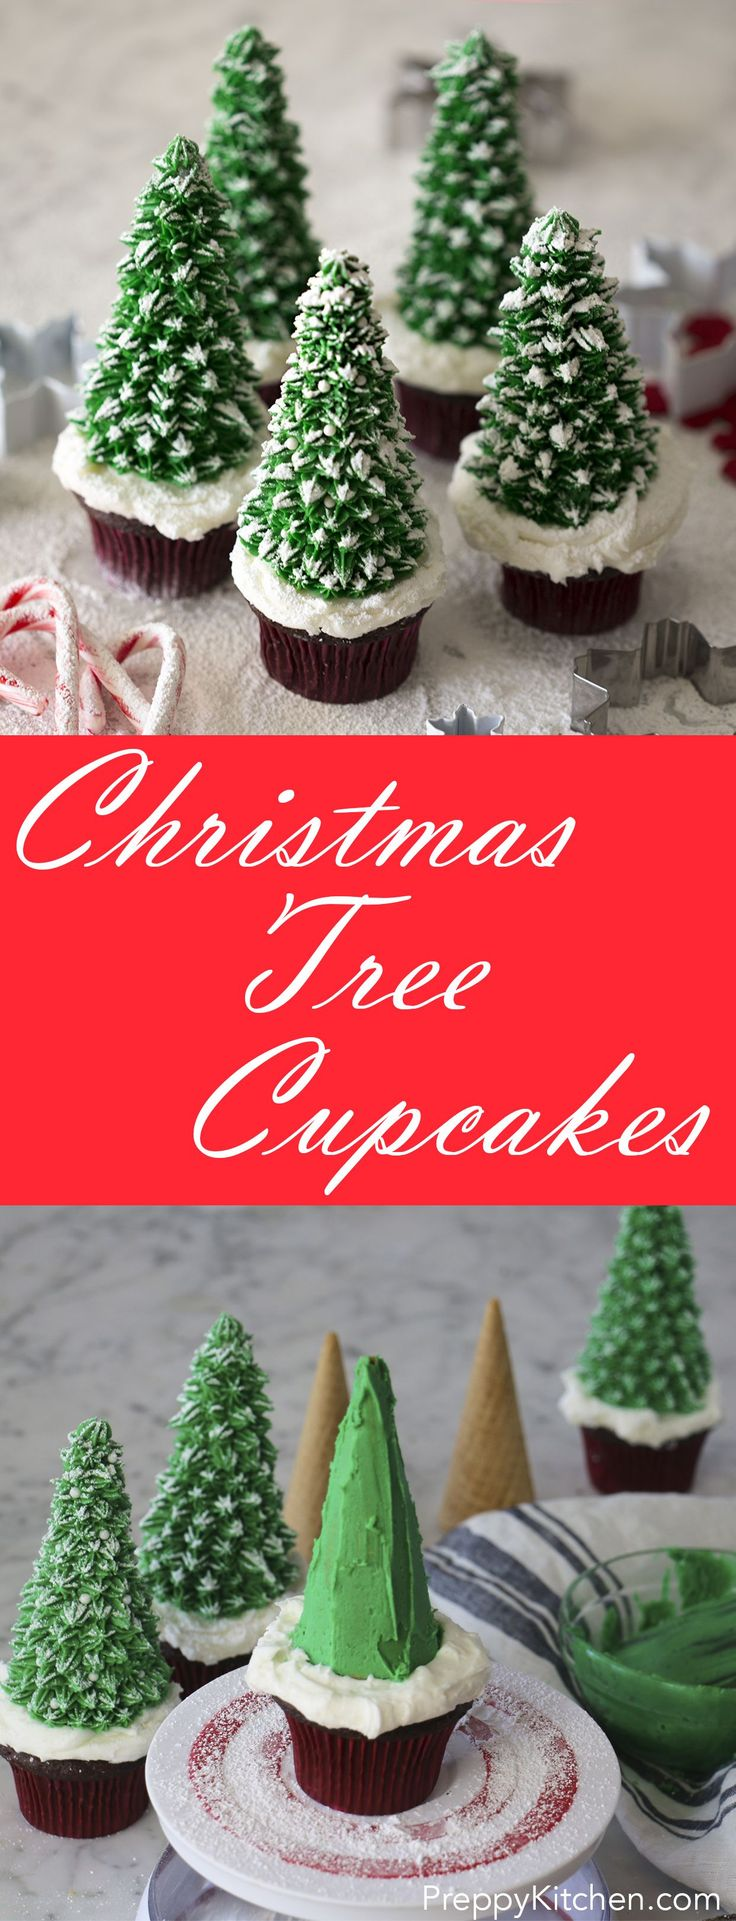 Easy to make holiday cupcakes that look like snow-covered Christmas trees! via @preppykitchen